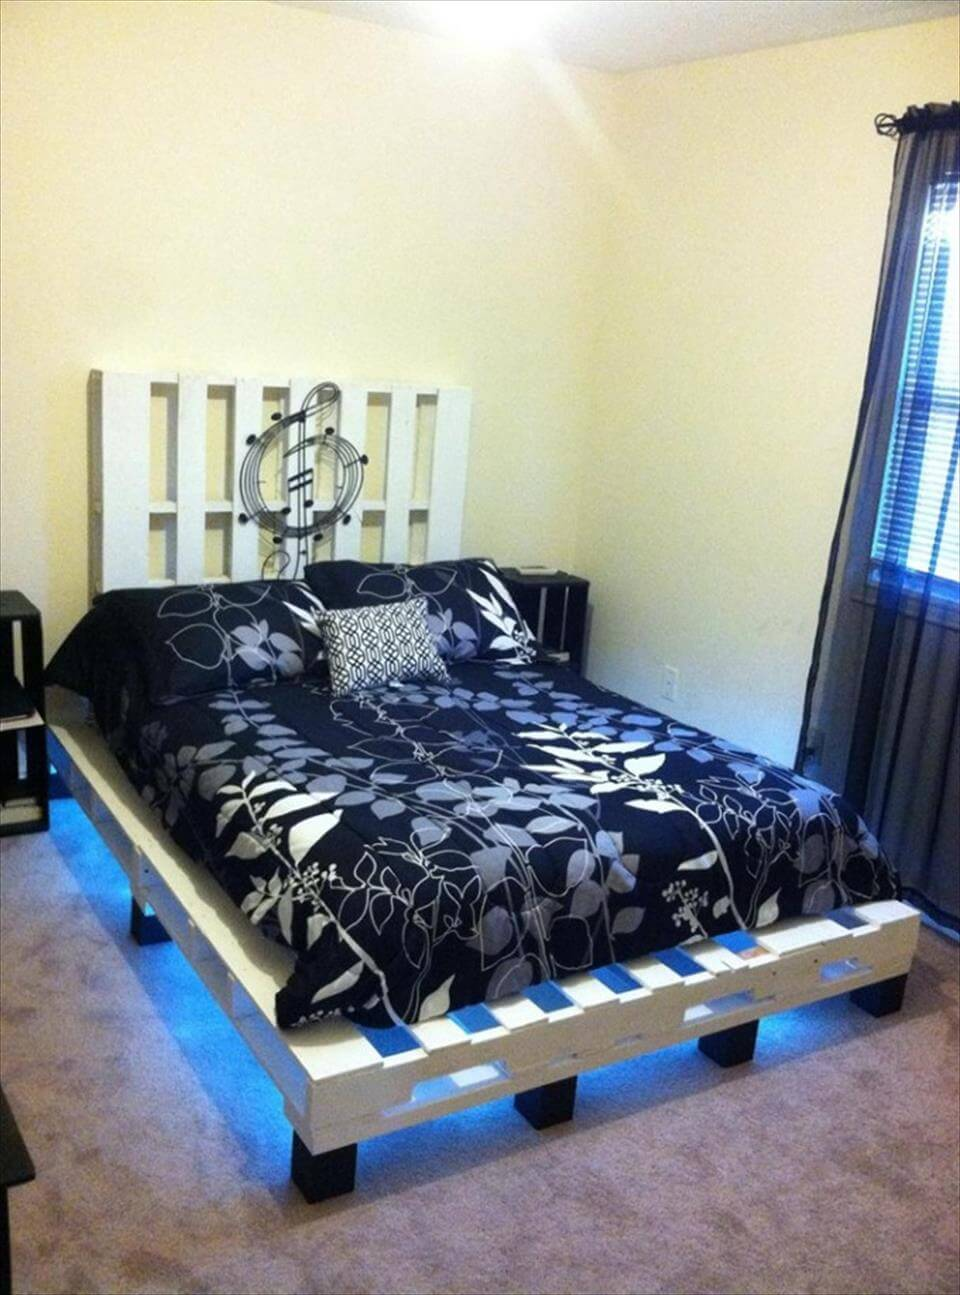 ... -Built Pallet Platform Bed Pallet King Size Bed with Crate Storage